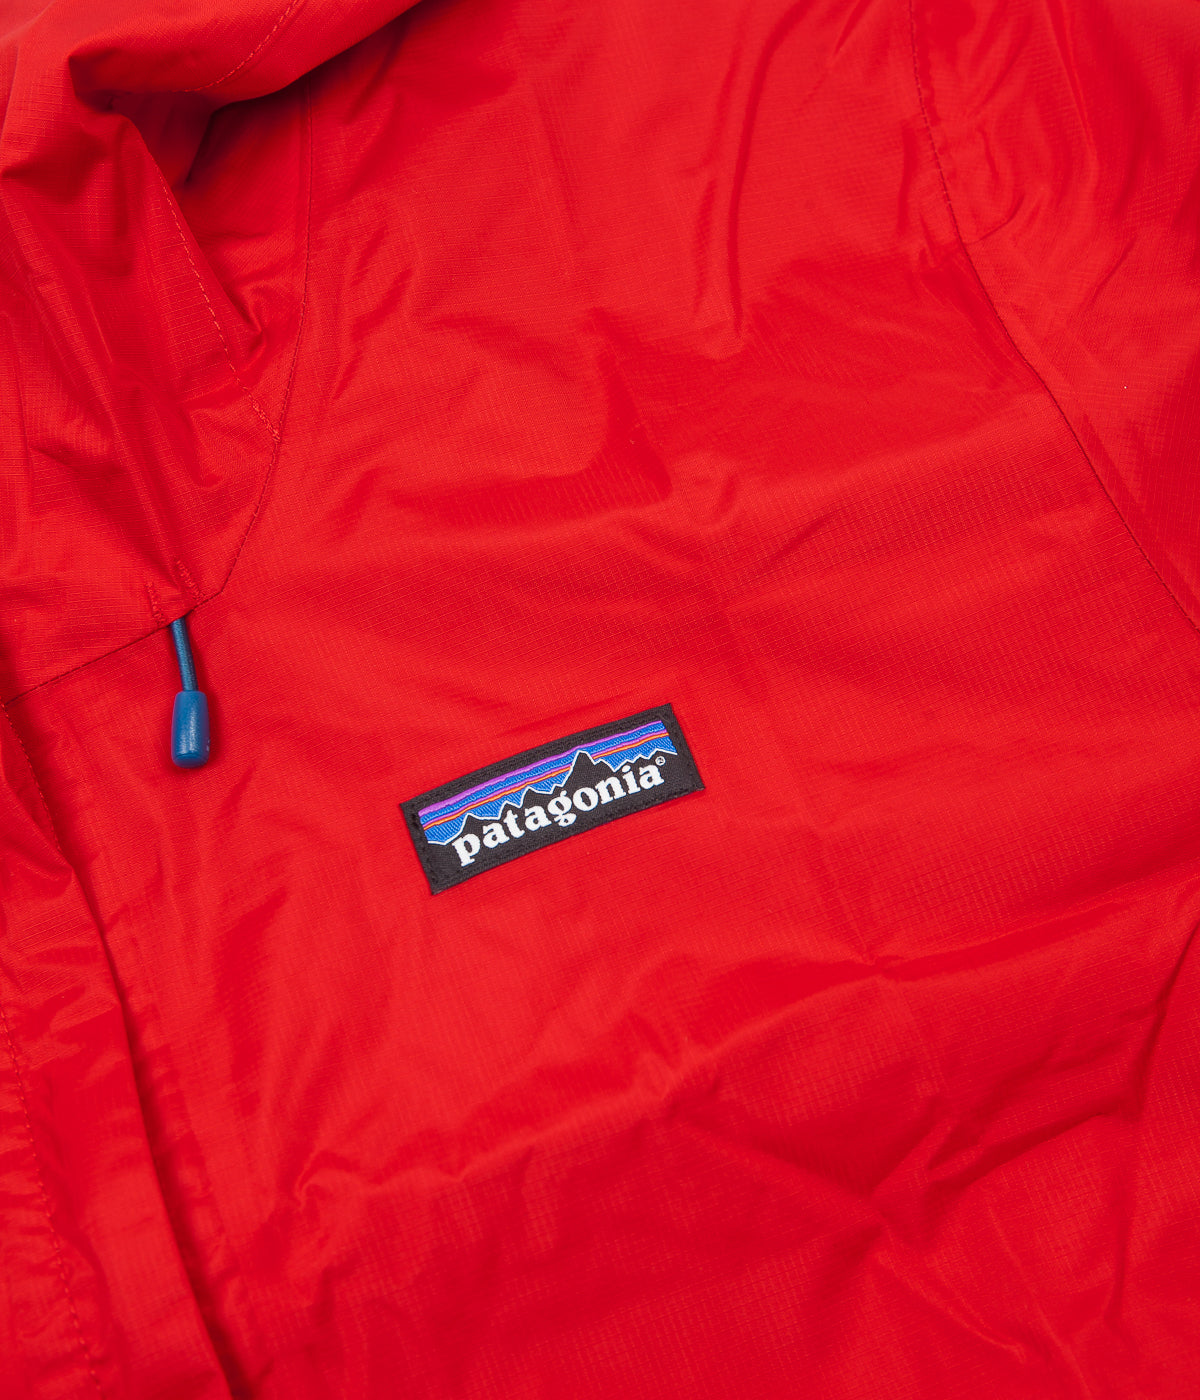 Patagonia Torrentshell Jacket - Fire / Big Sur Blue